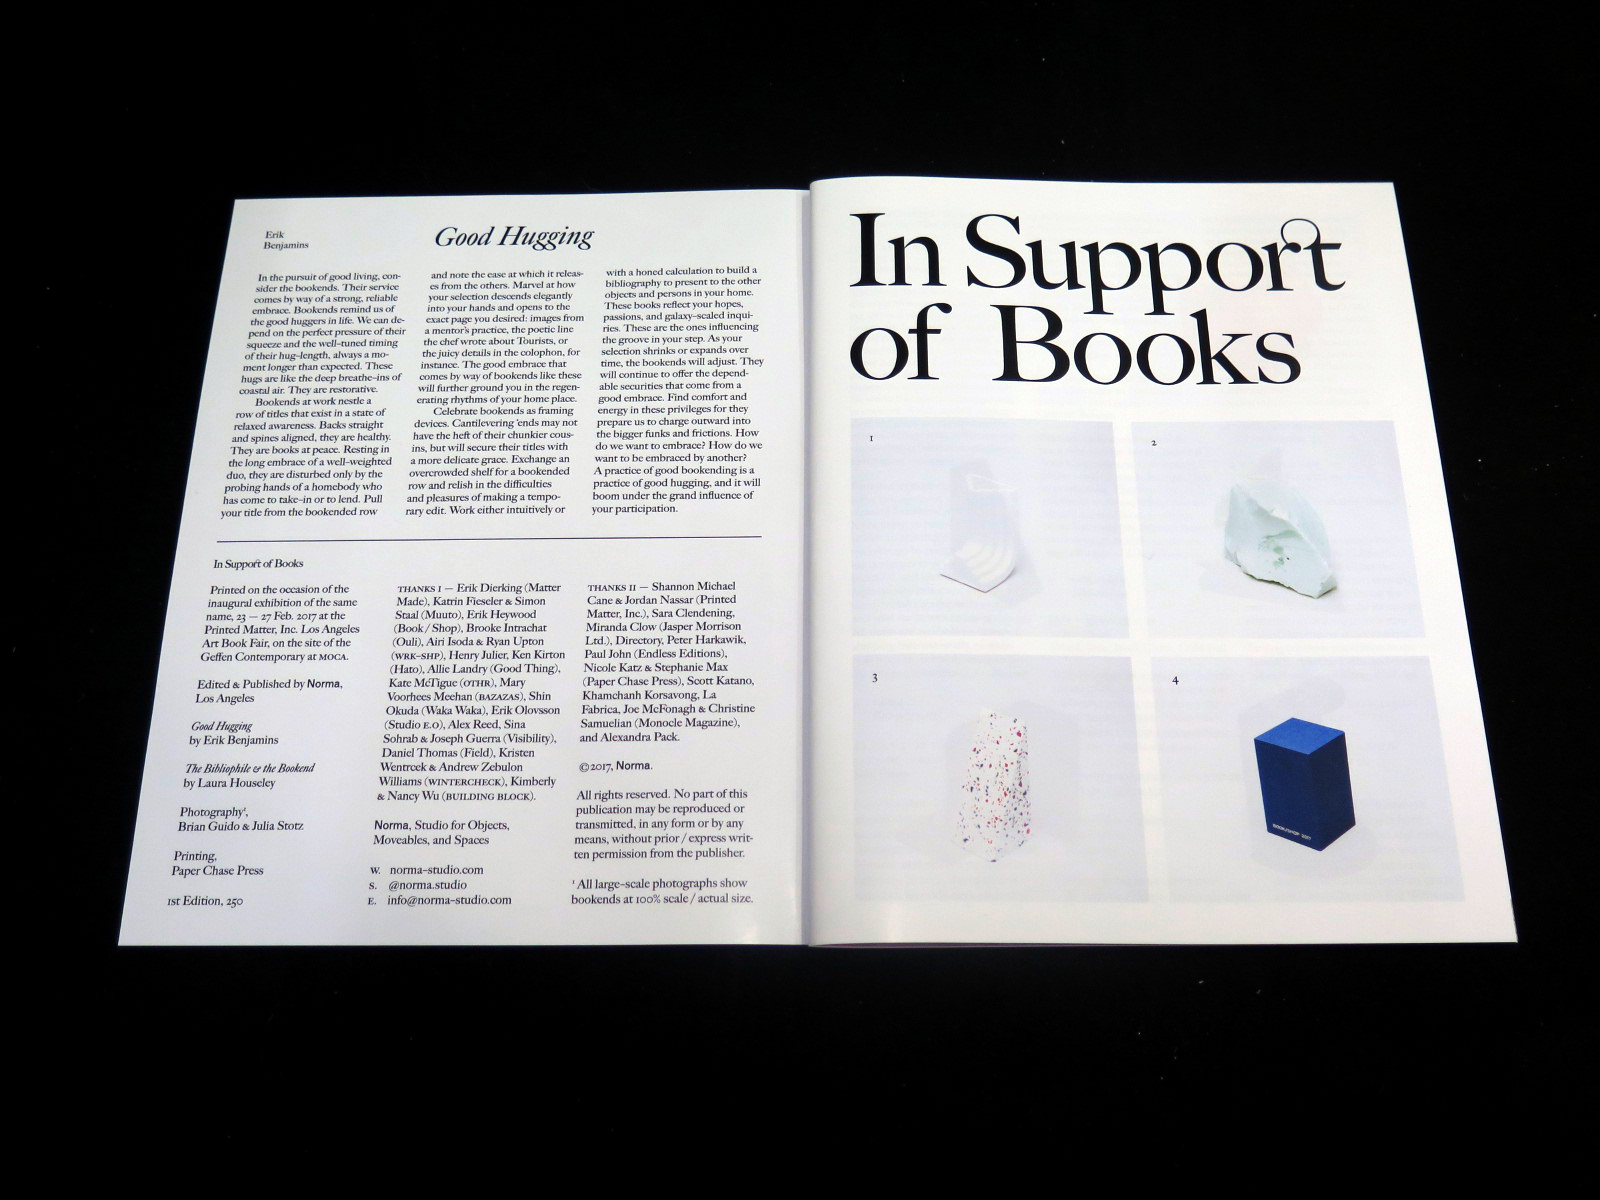 in_support_of_books_catalog_LAABF_norma_motto_00  in_support_of_books_catalog_LAABF_norma_motto_01  in_support_of_books_catalog_LAABF_norma_motto_02 ...